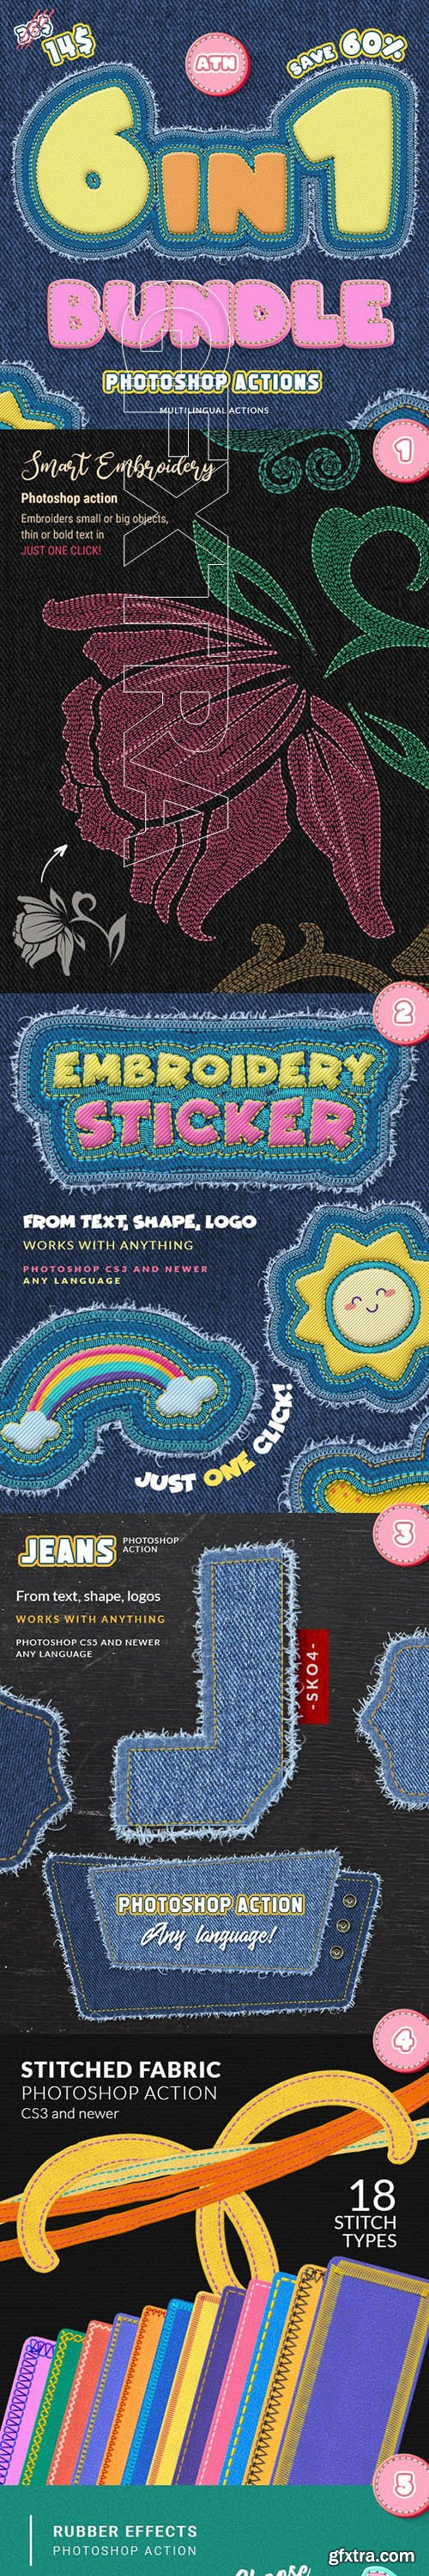 GraphicRiver - Stitch & Embroidery Actions Bundle 25972982